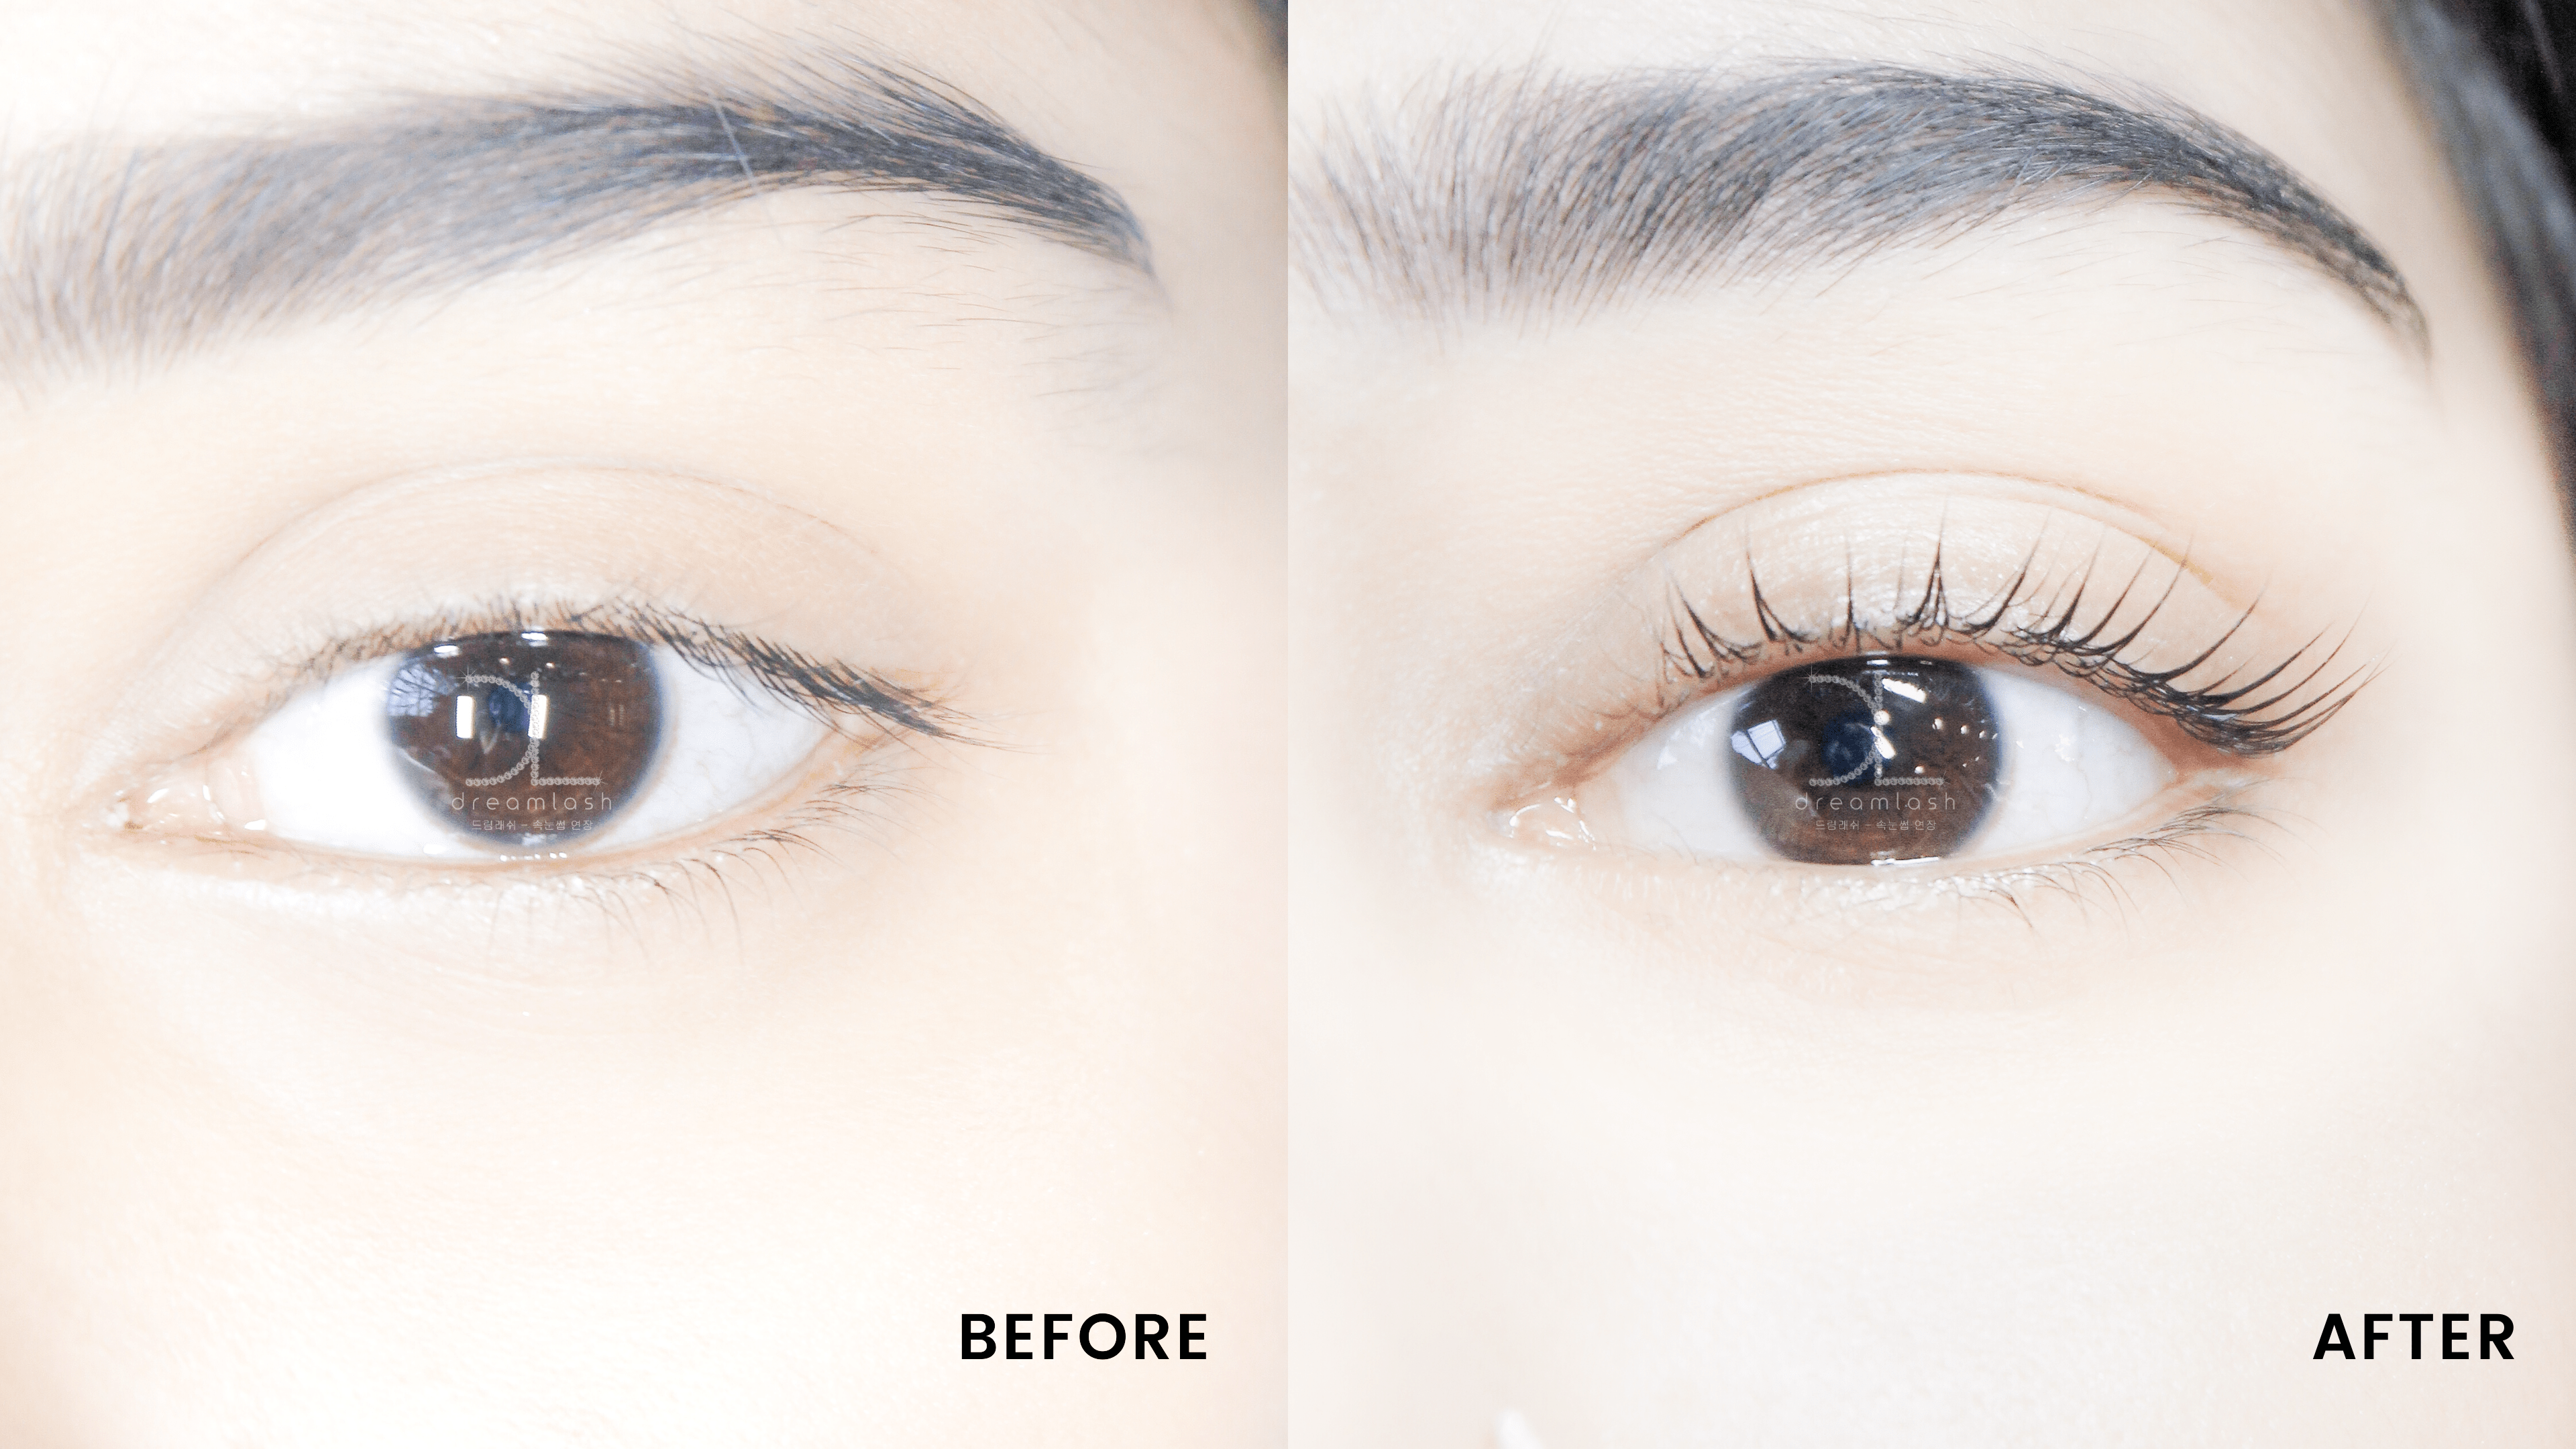 Lash Lift Result - Before and After Filler Lash Lift Service